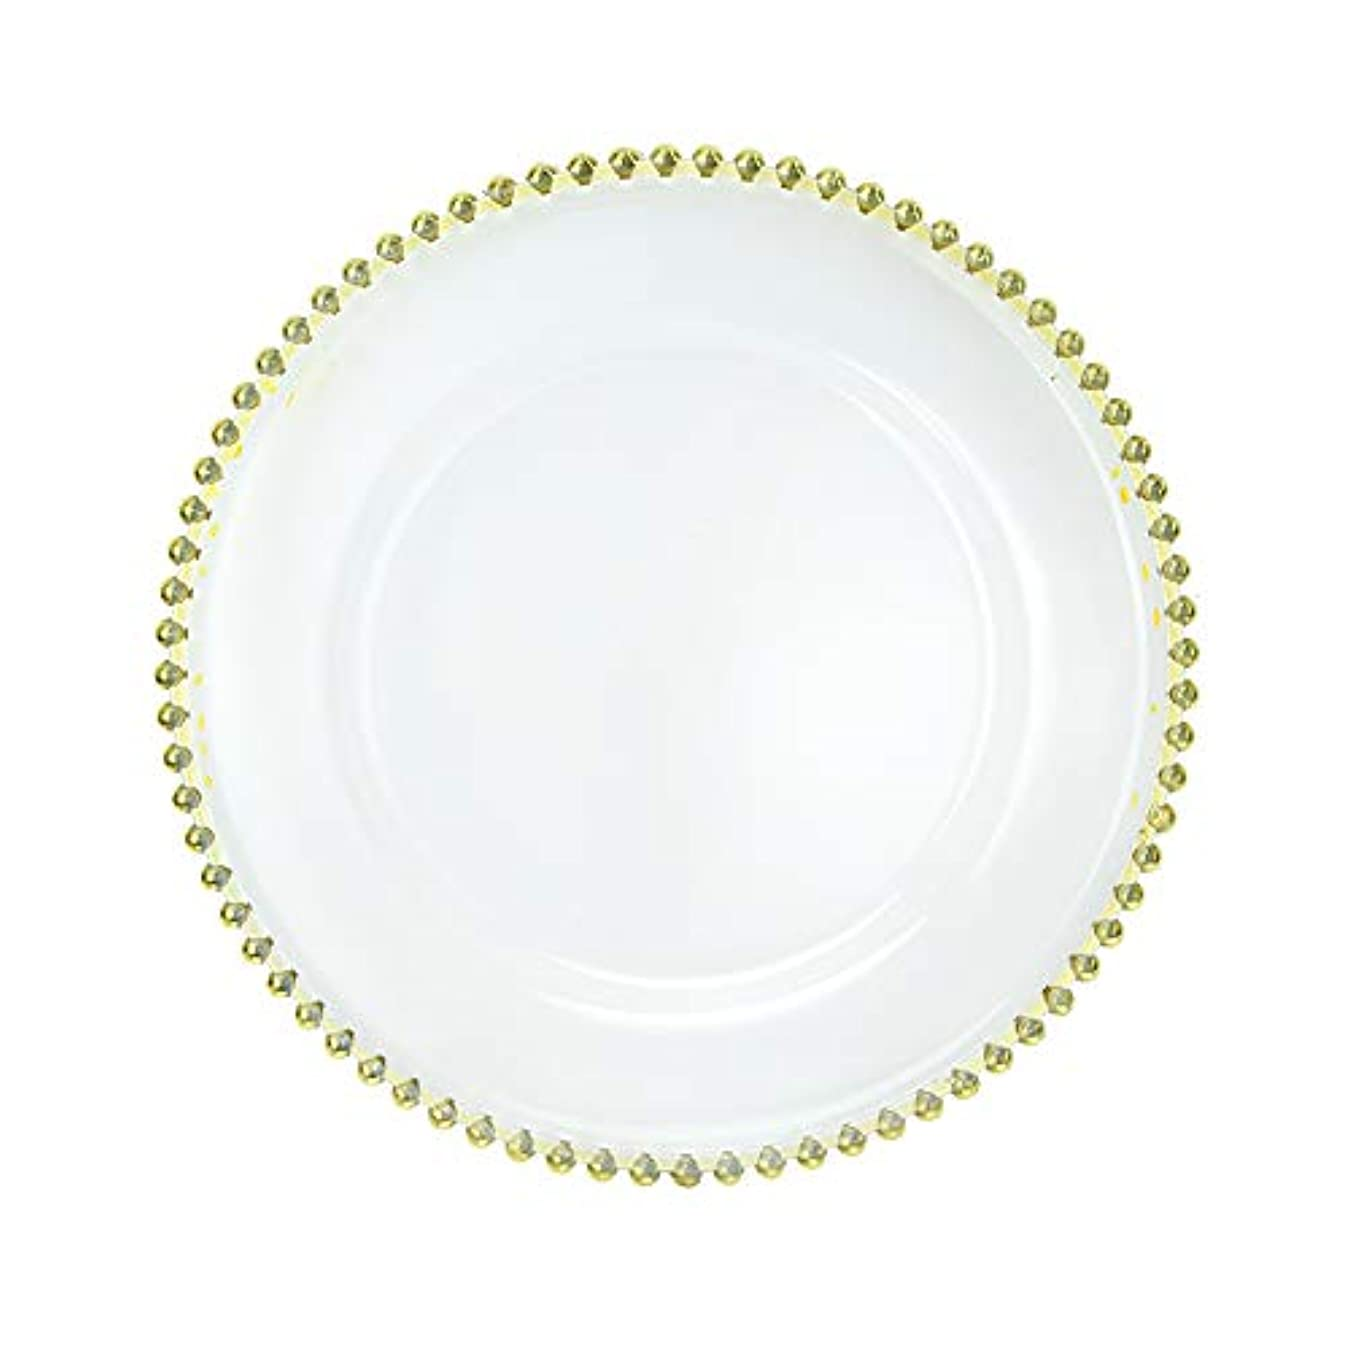 Elegant Clear Acrylic Charger Plate with Bead Rim, Set of 12 (Gold/Silver, 12.5 inch) (Gold)